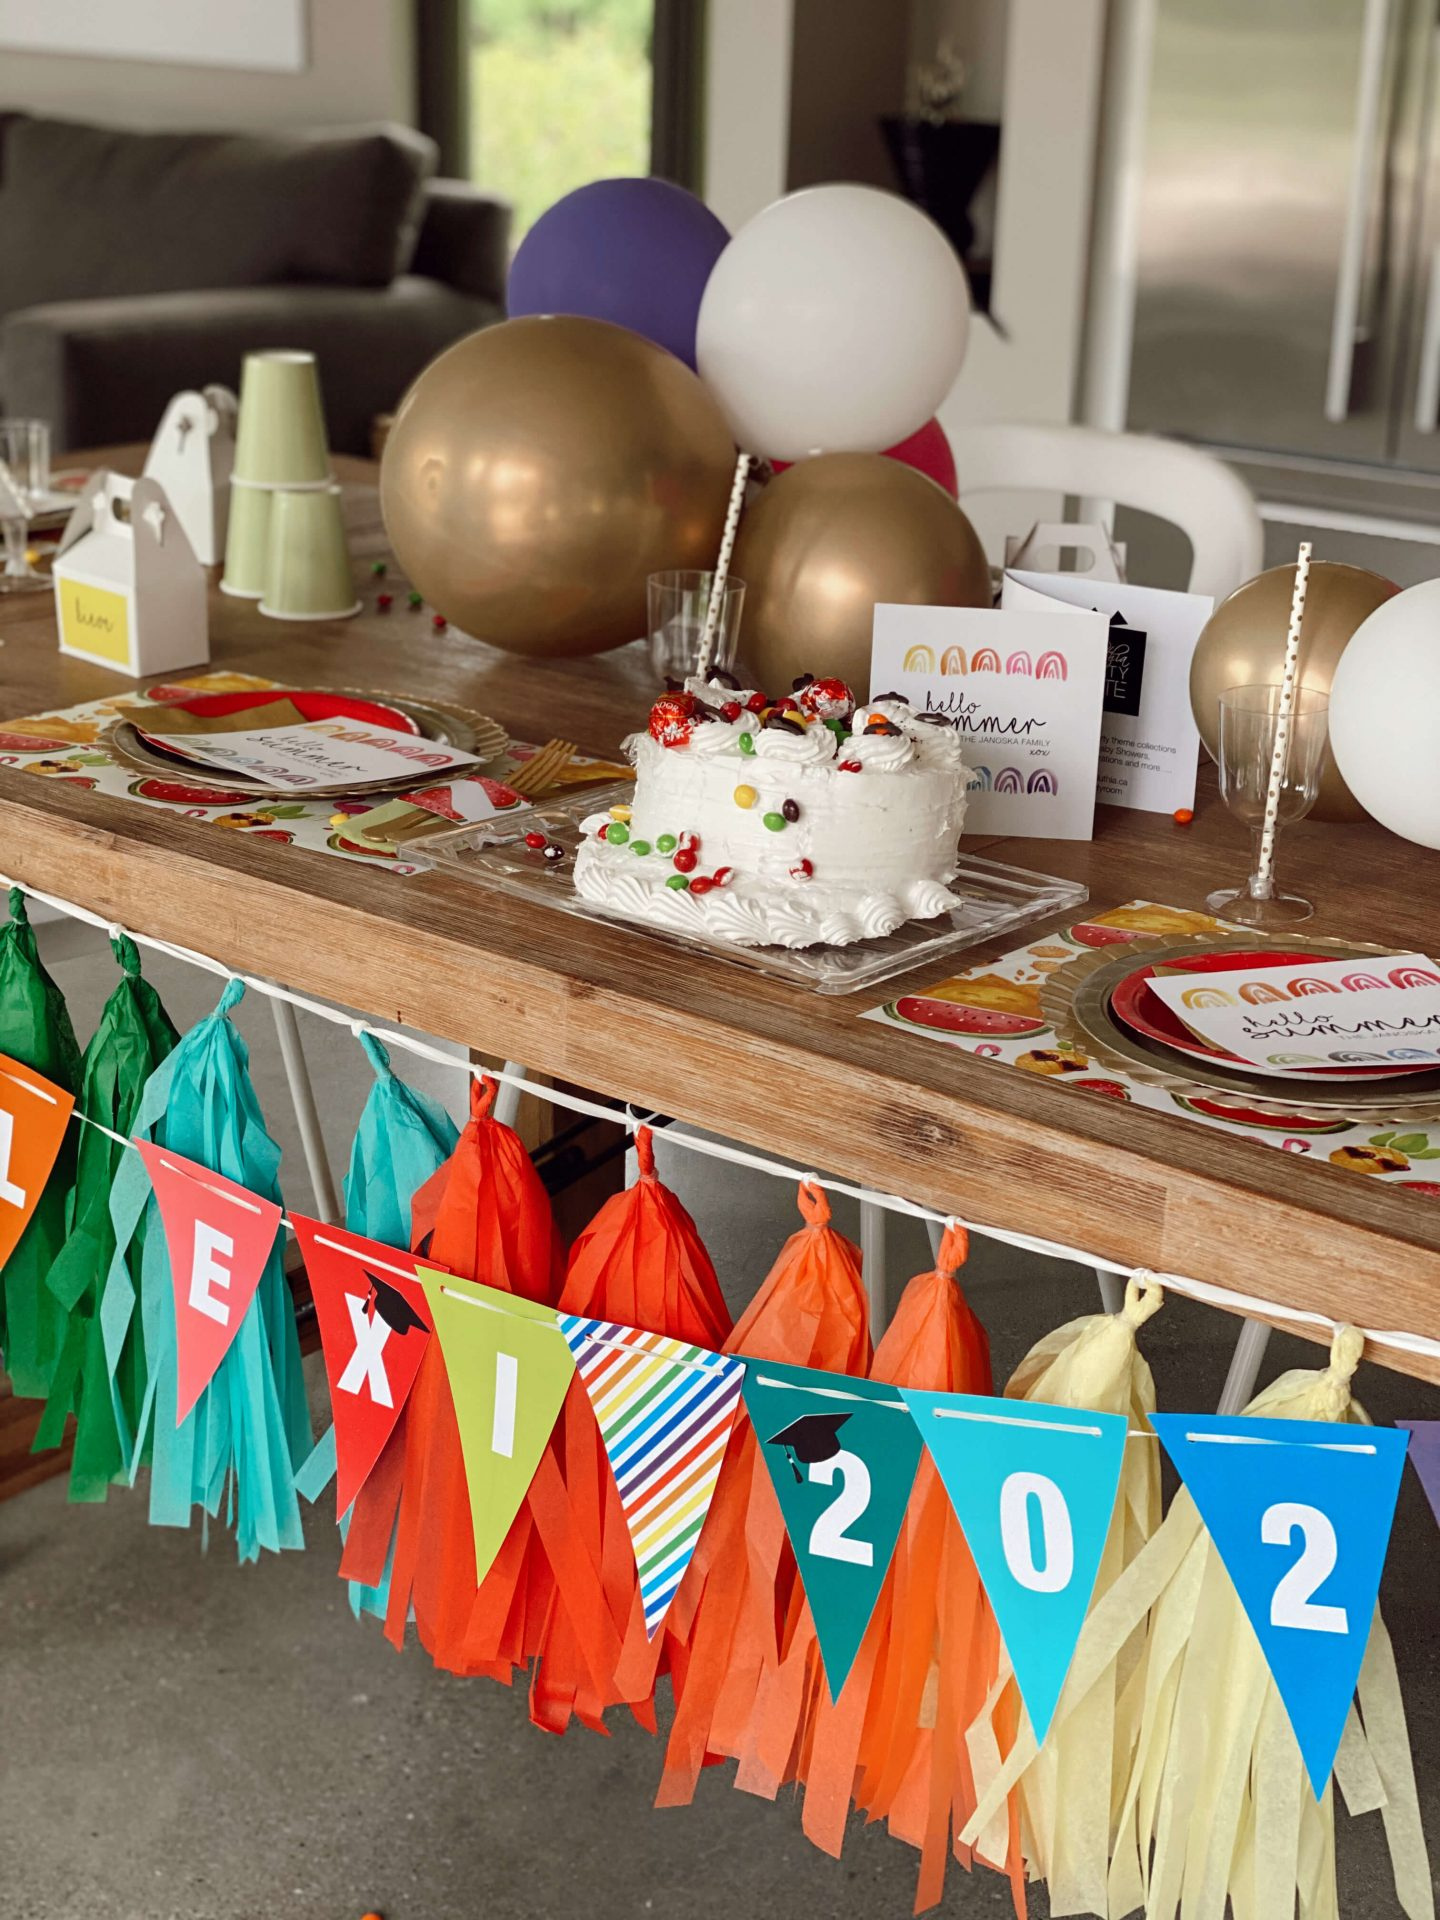 Find 6 fun and interactive party ideas that kids, teenagers, and adults will love! These are perfect for graduation parties, summer parties, and birthday parties. #partyideas | interactive party ideas | interactive party food | fun party food ideas | fun party ideas | fun party food for teens | fun party food for adults | graduation party ideas | party food display ideas | party food display ideas presentation | party food display diy | graduation party food ideas | graduation party foods